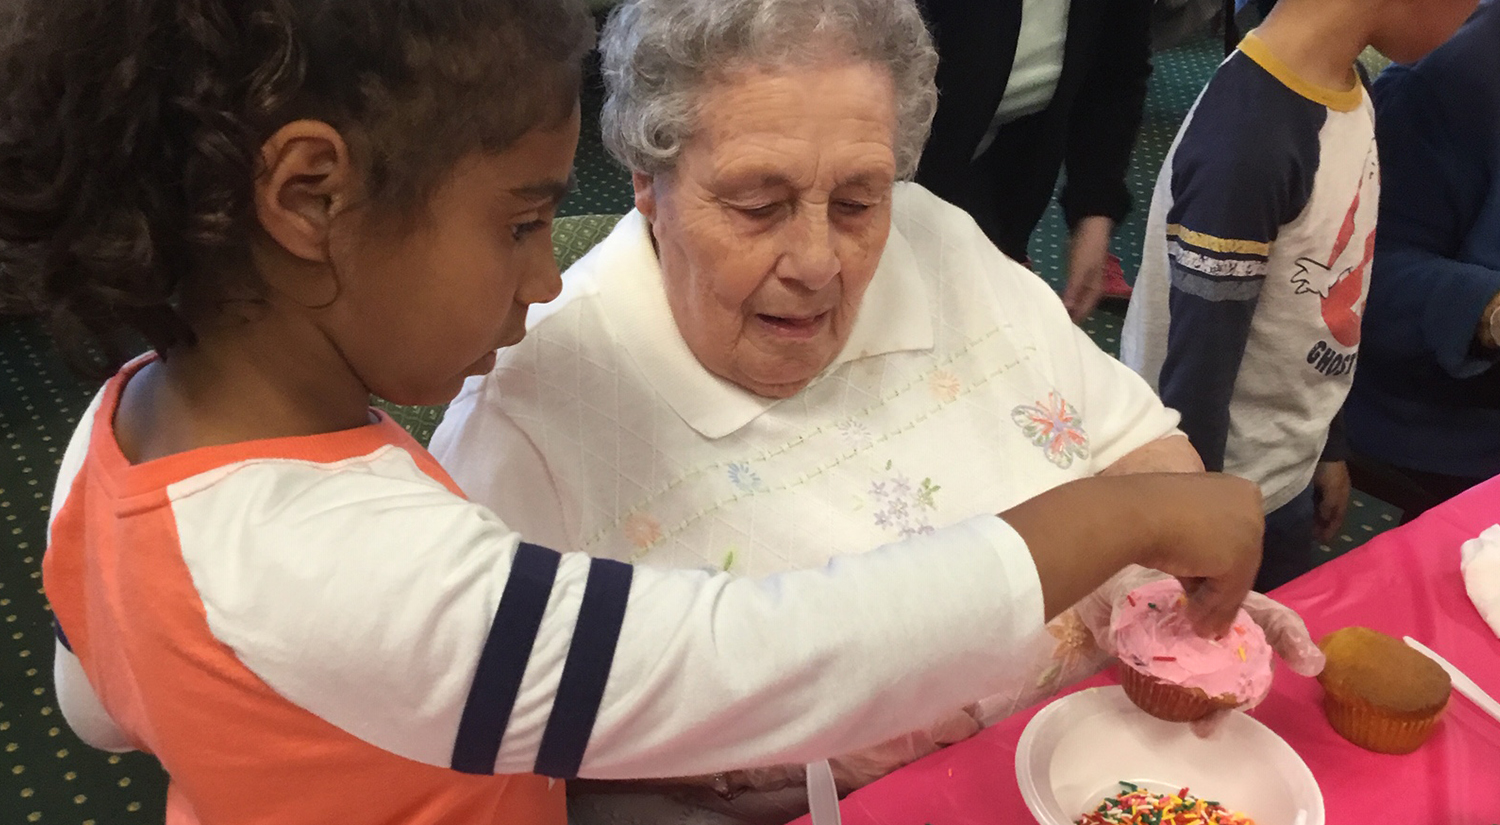 Female Senior and Child Decorate Cupcakes for Easter